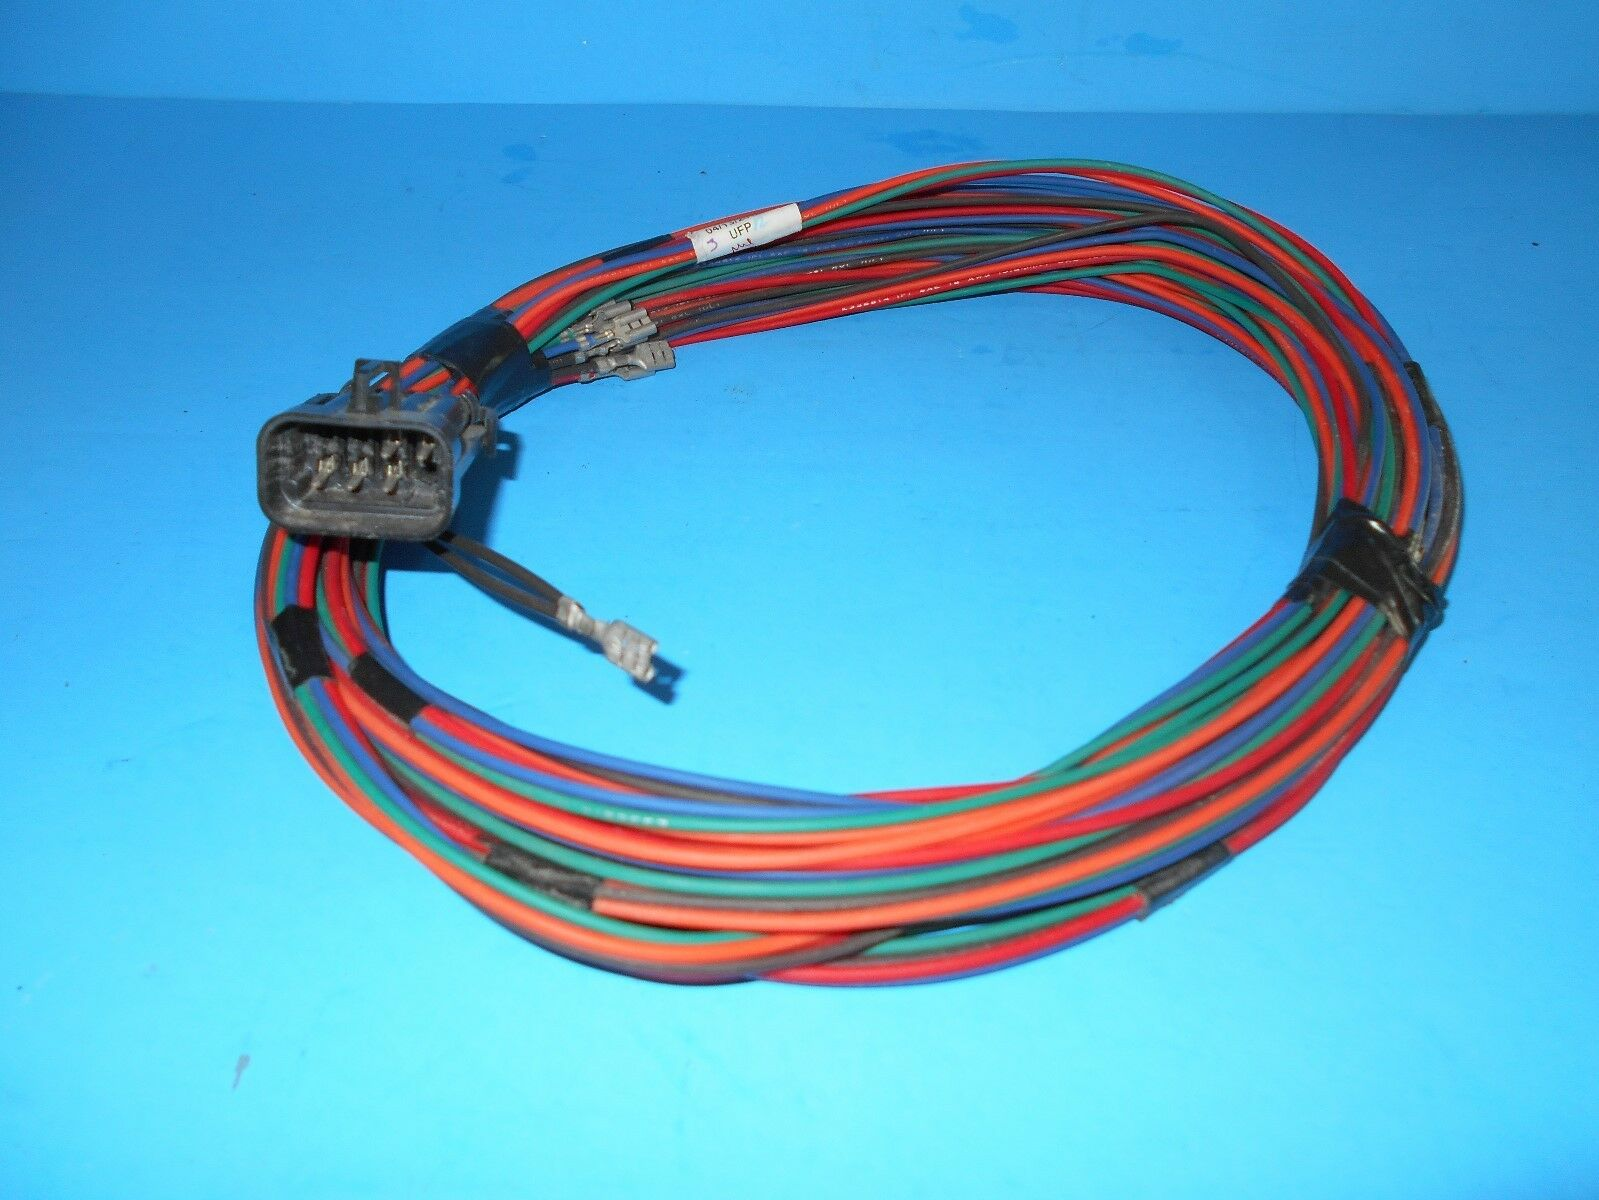 s l1600 onan rv generator remote panel wire harness 25 ft with 8 pin plug 8 pin wire harness at soozxer.org